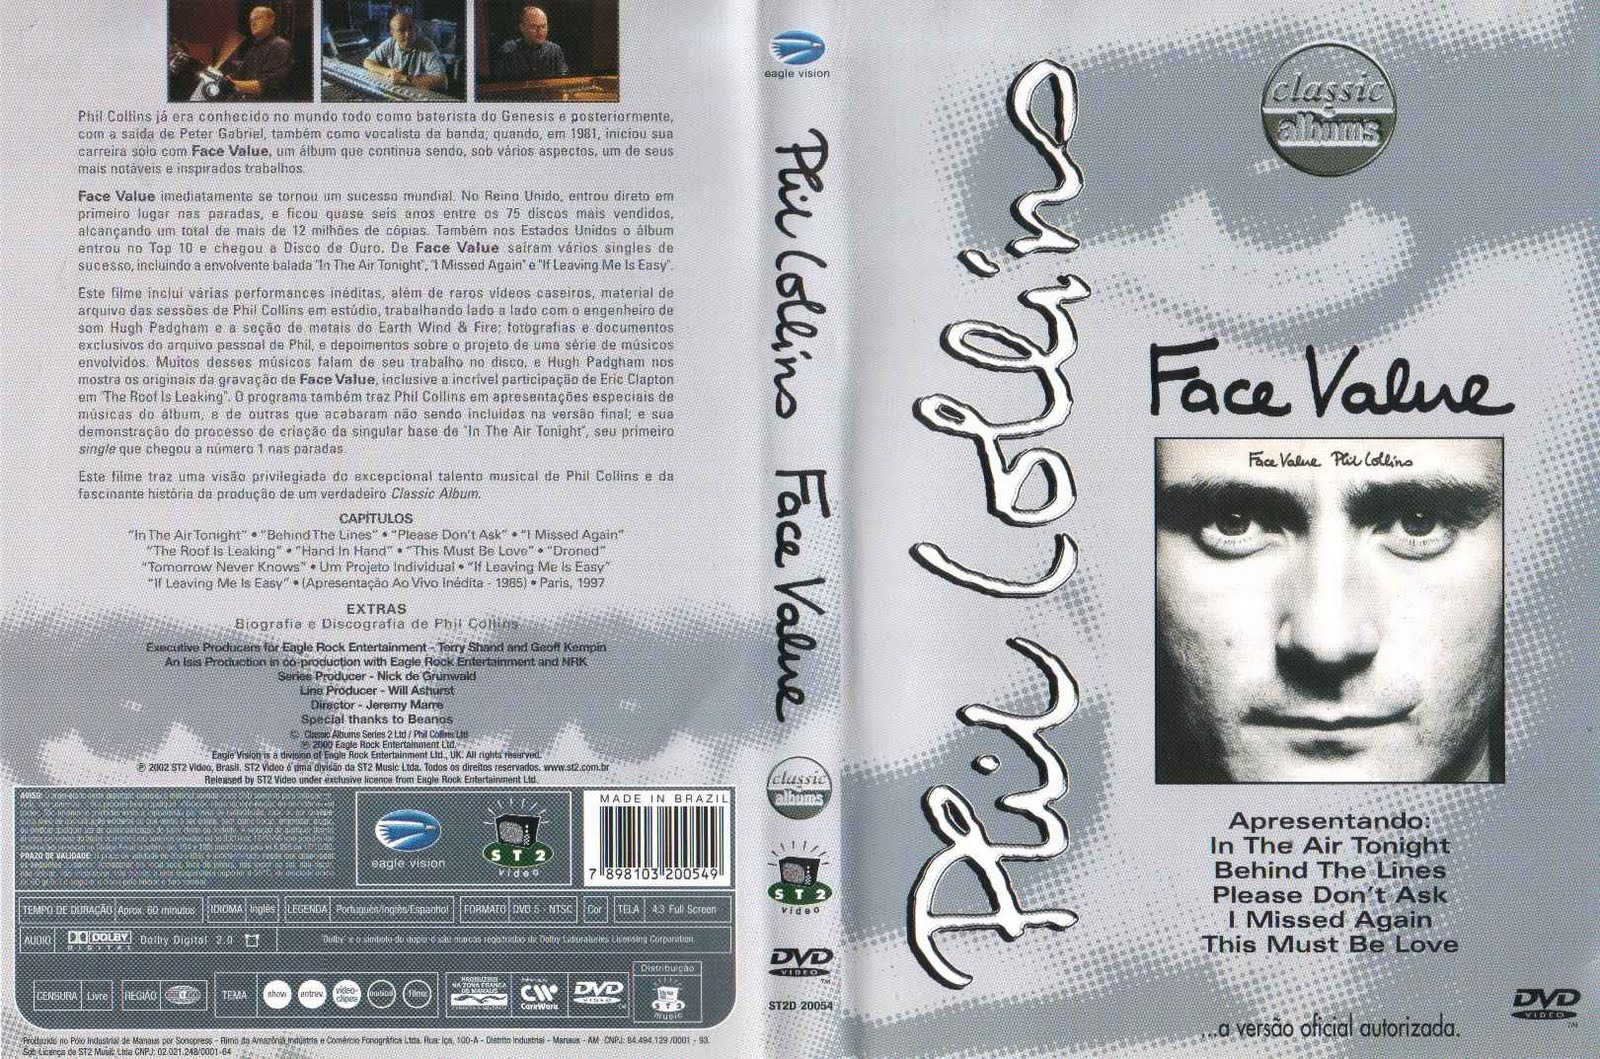 http://1.bp.blogspot.com/-VjJjLl212uI/T2d7z4_9HJI/AAAAAAAAA9g/jpvcdibumdQ/s1600/Phil+Collins+-+Face+Value+%2528DVD%2529.jpg